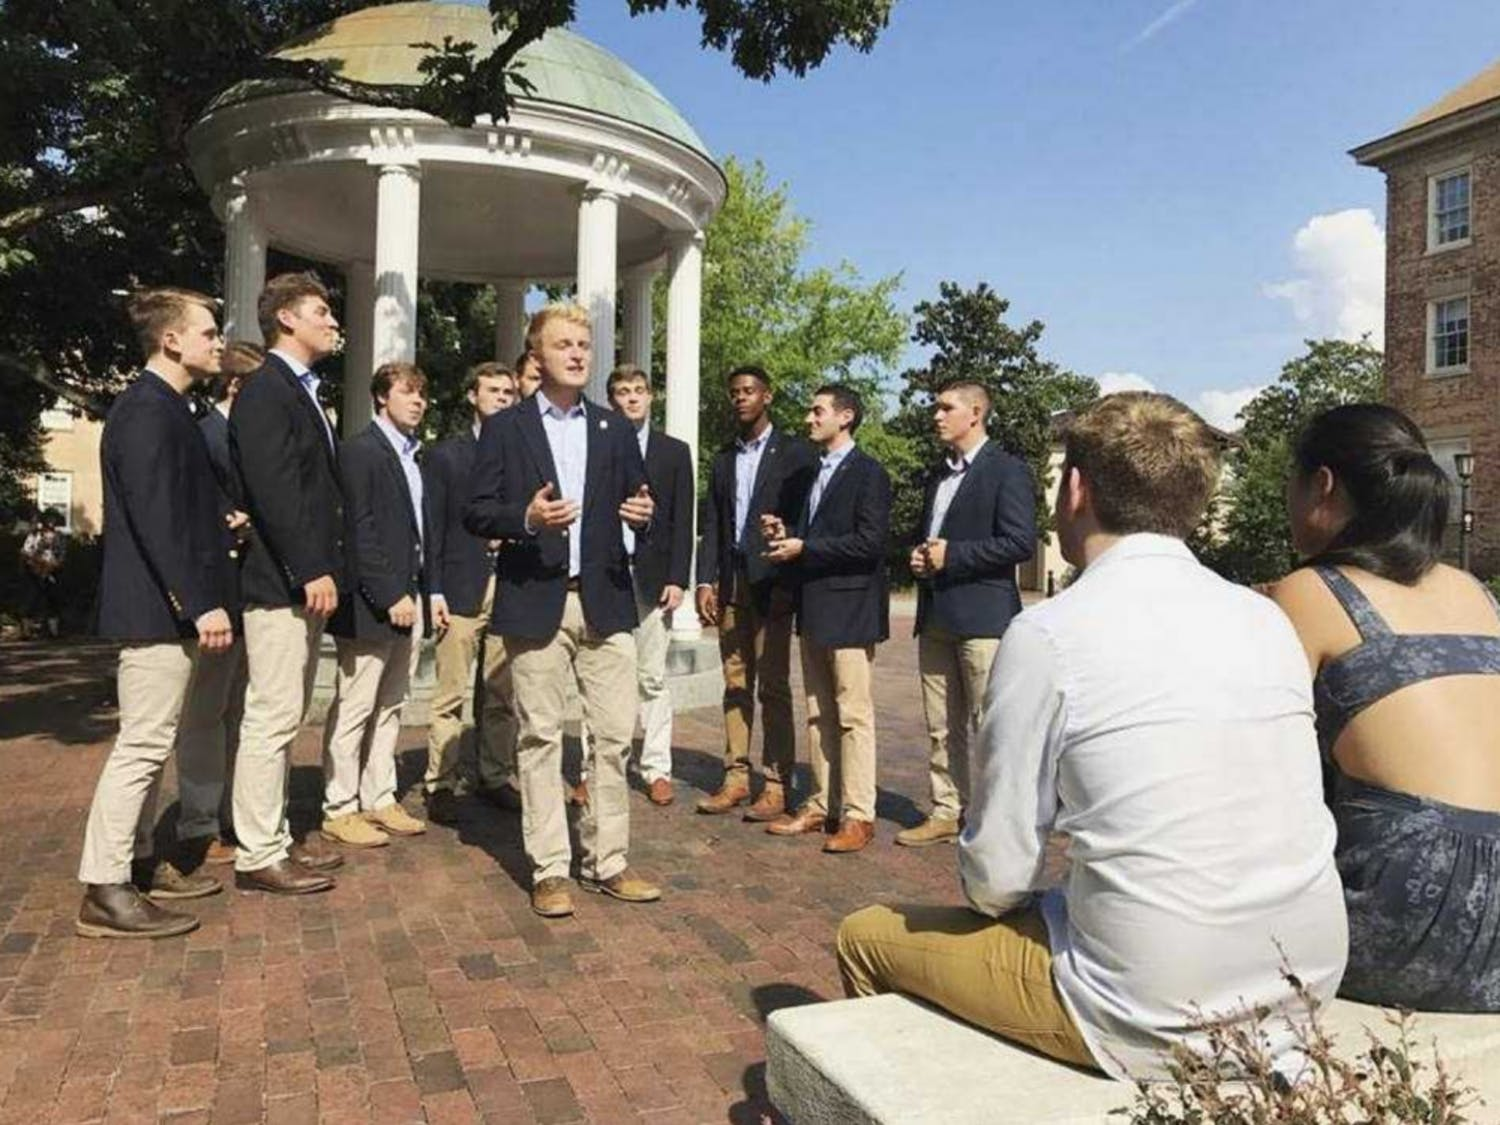 Clef Hangers are an all-male a cappella group. Photo courtesy of Patrick Dow.